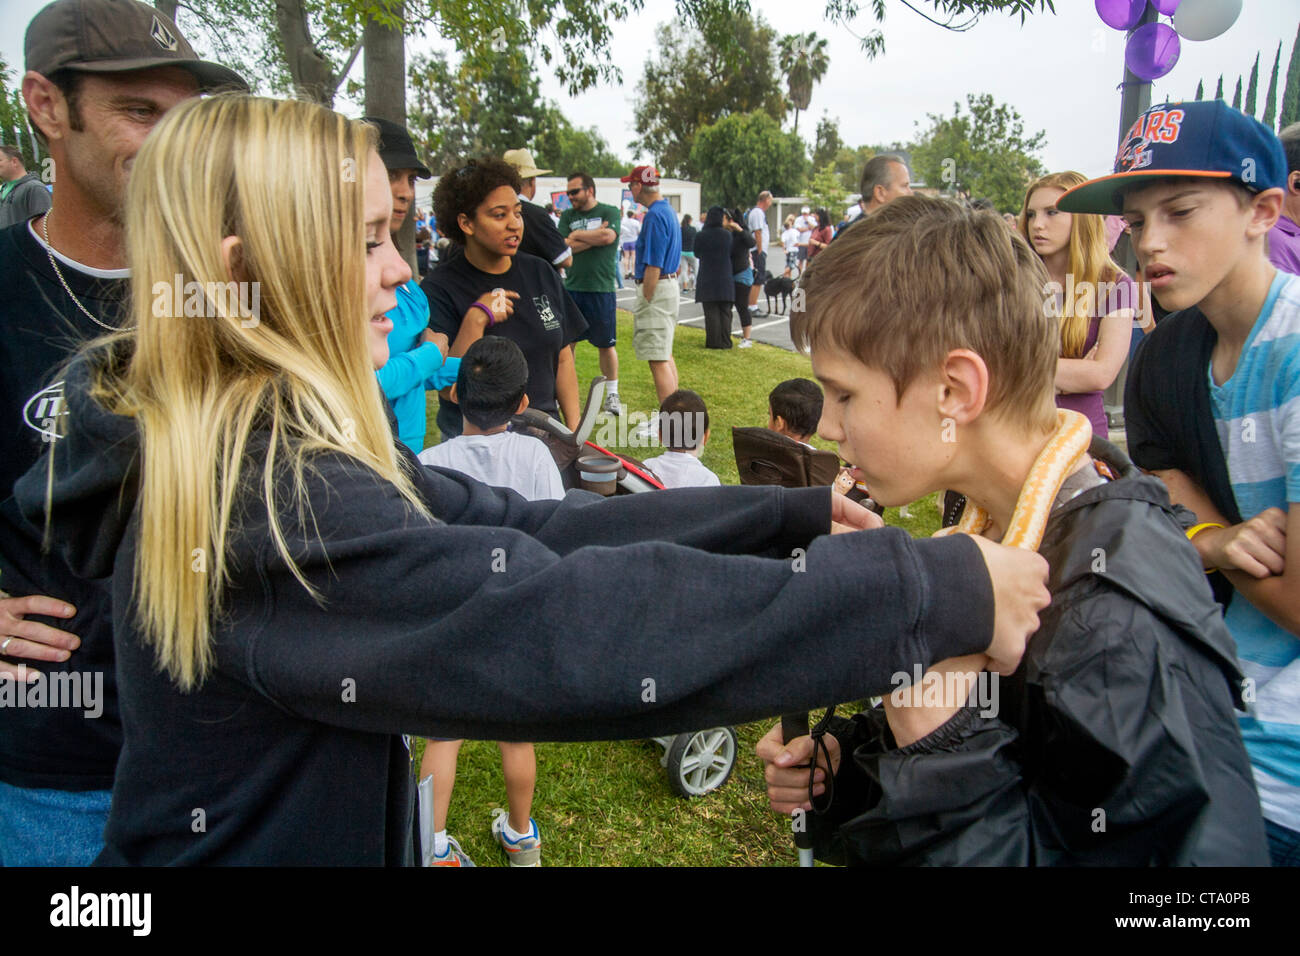 A girl puts a snake around the neck of blind boy to give a tactile experience at a fund raiser for children with - Stock Image